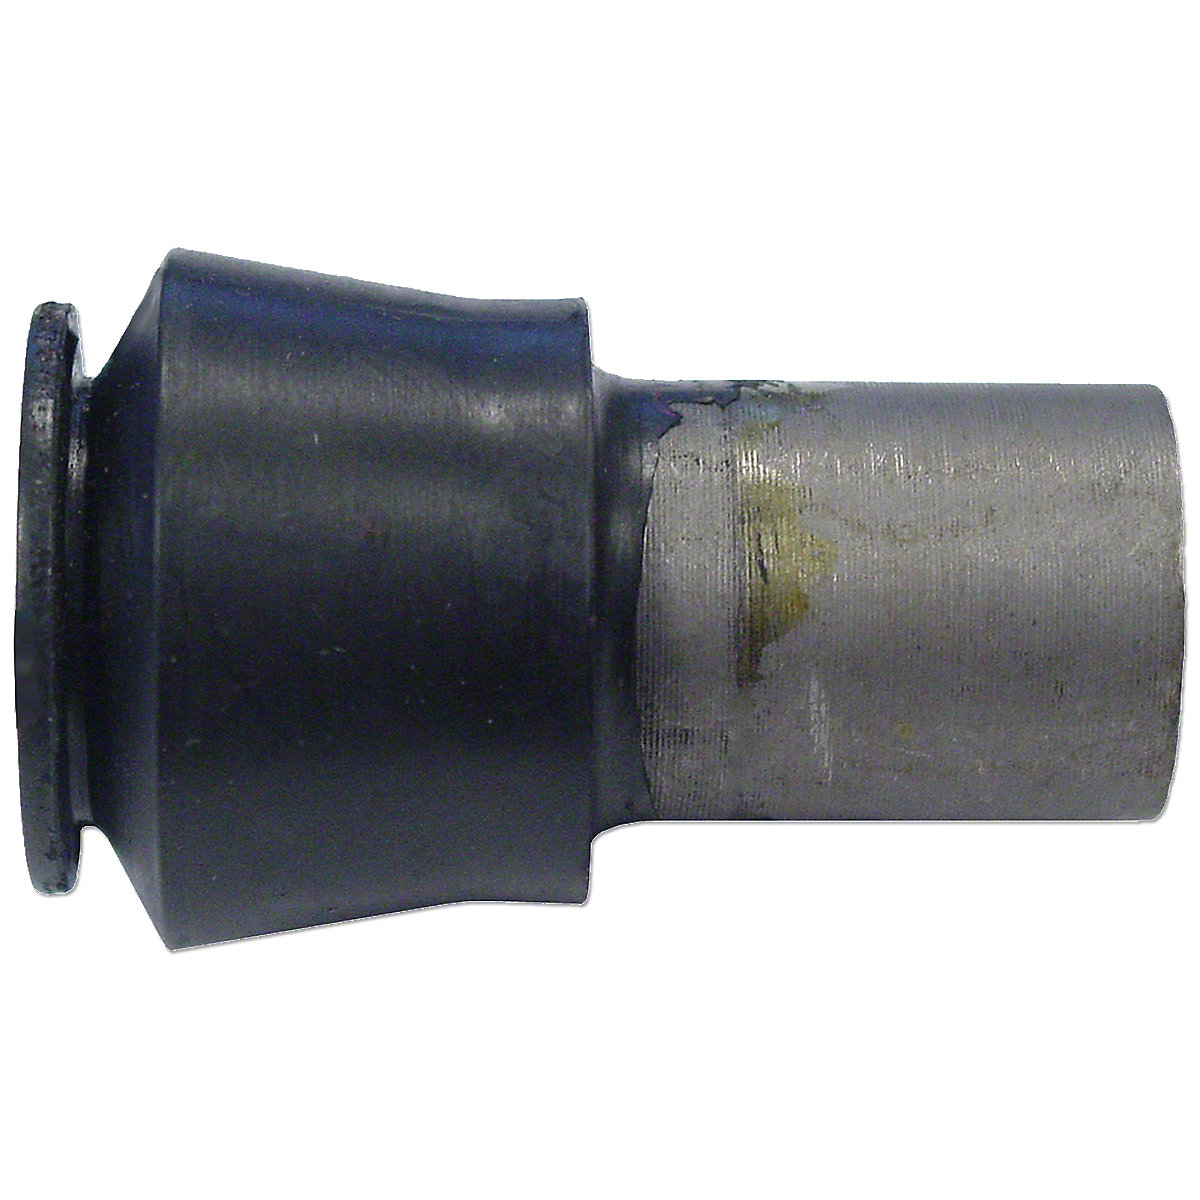 Acs176 Seat Pivot Bolt Bushing For Allis Chalmers Wd